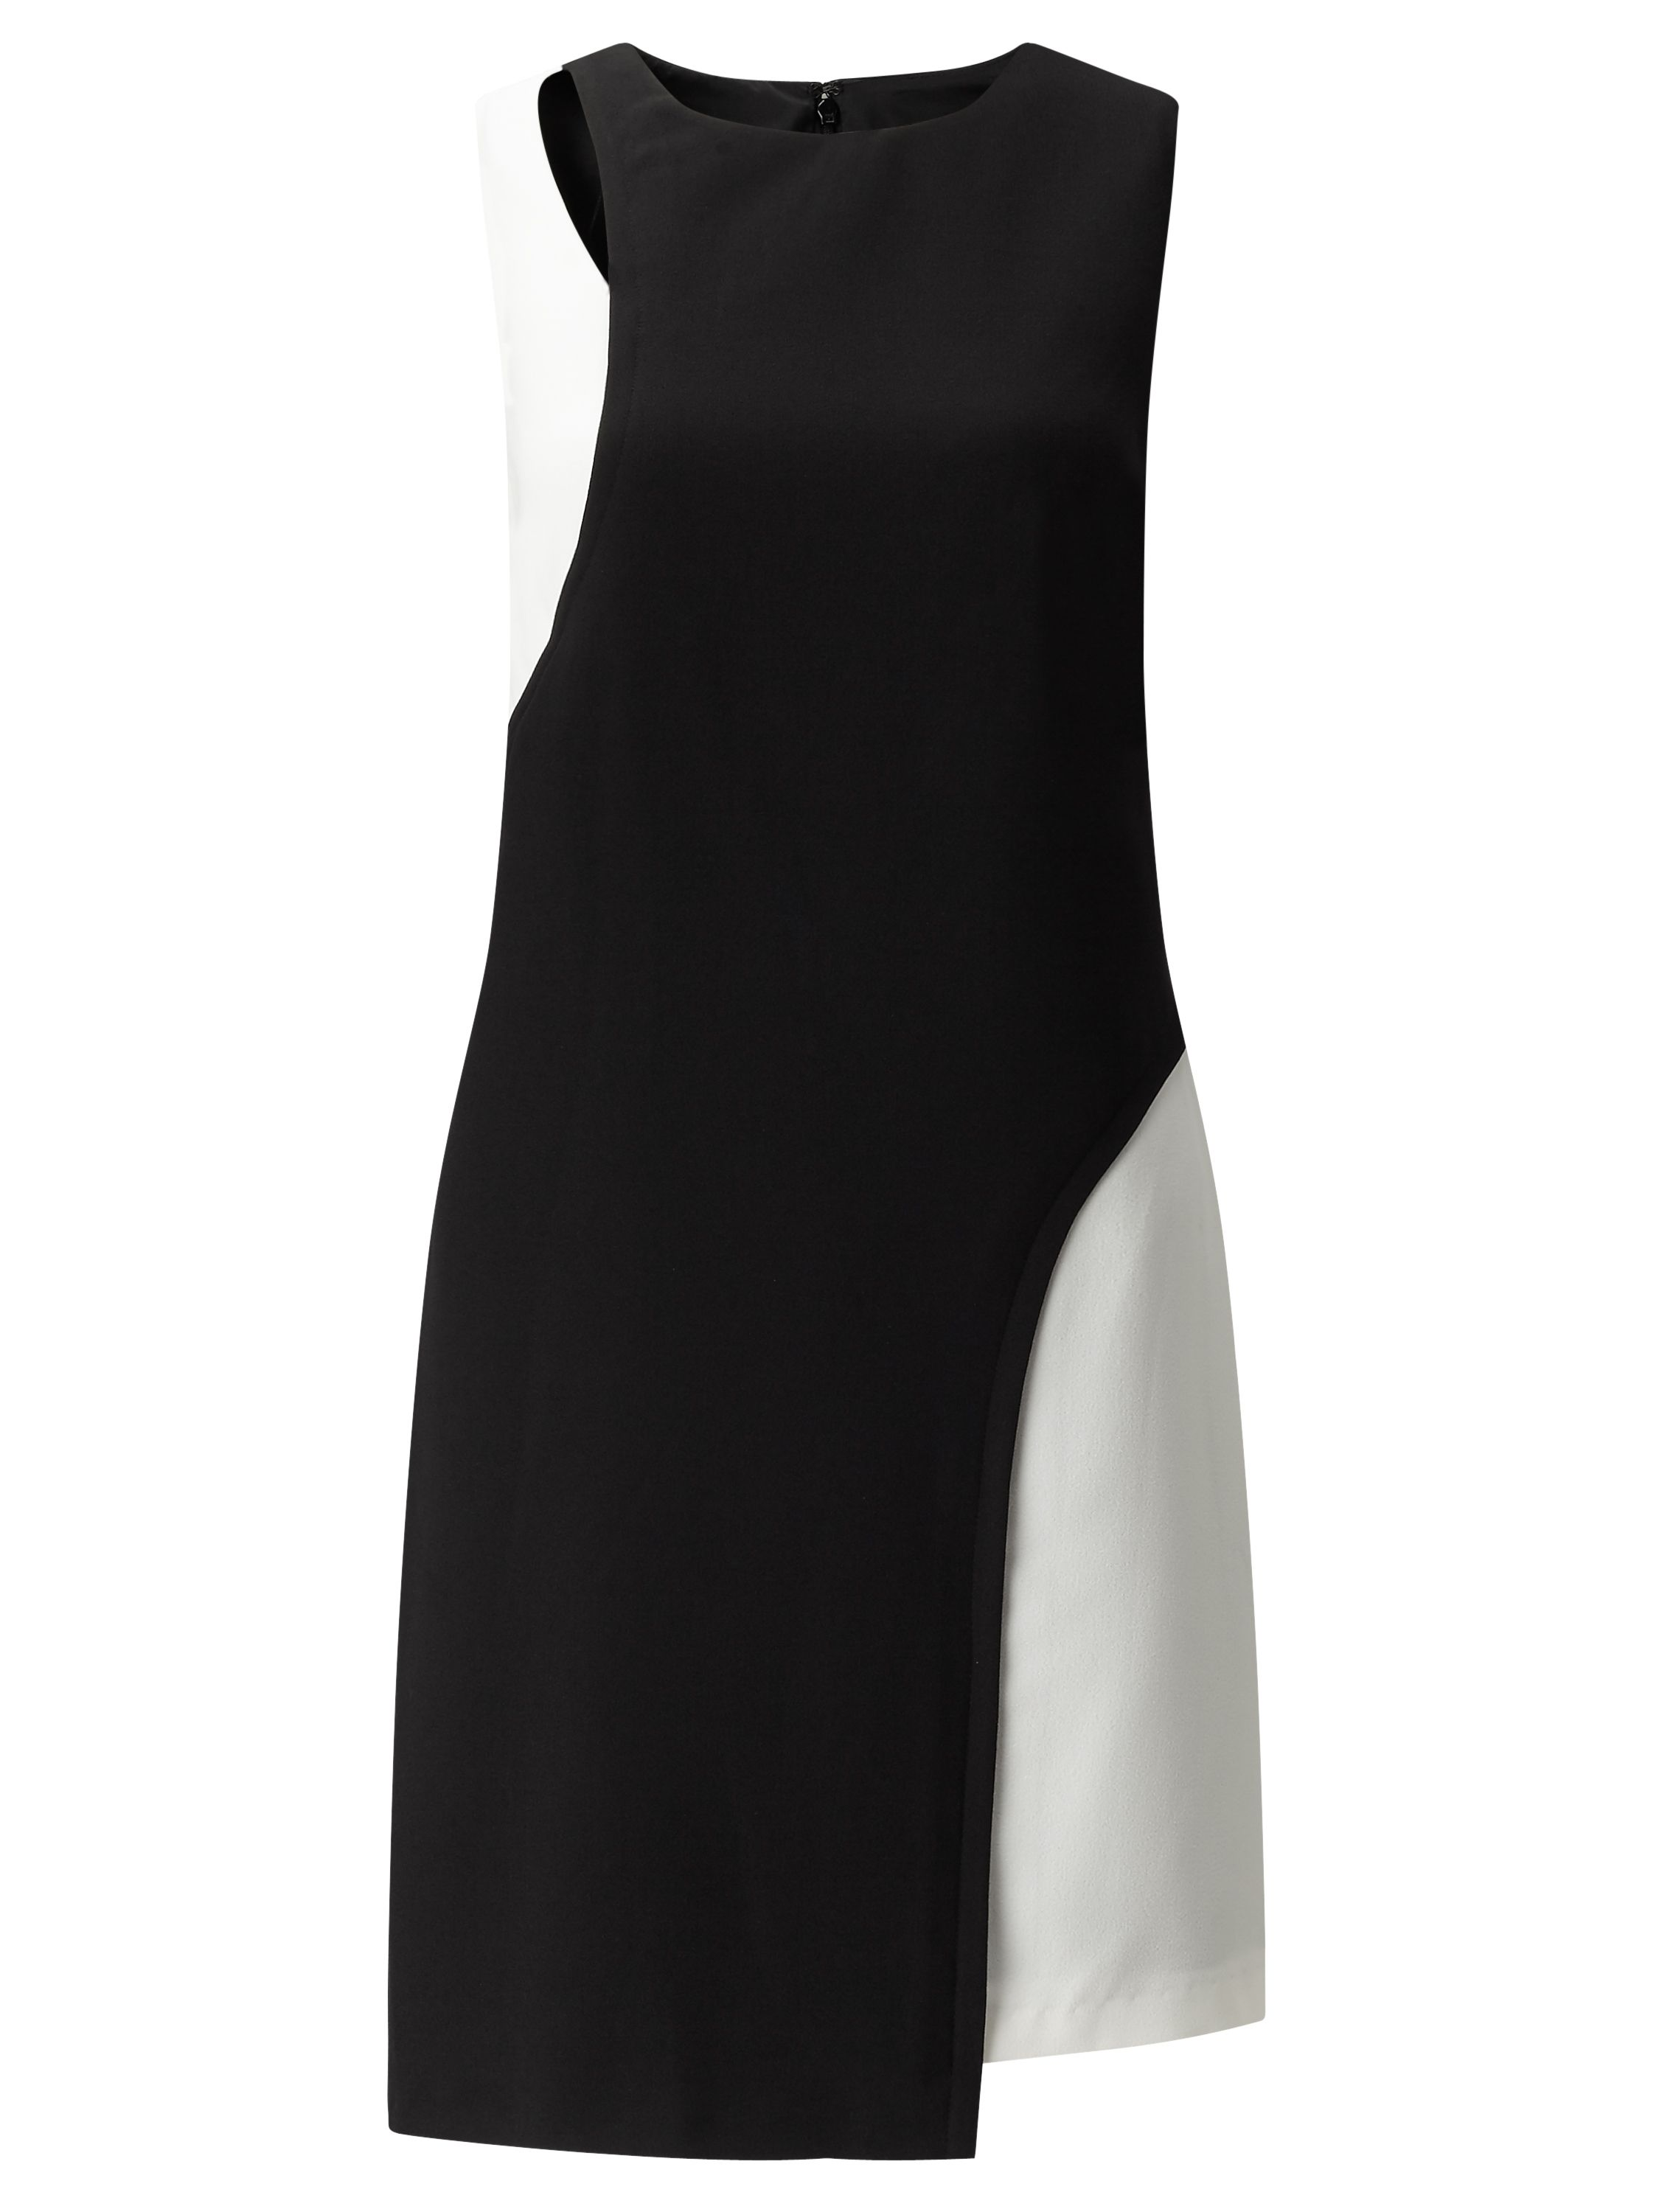 Adrianna Papell Asymmetric CutOut Crepe Dress Black